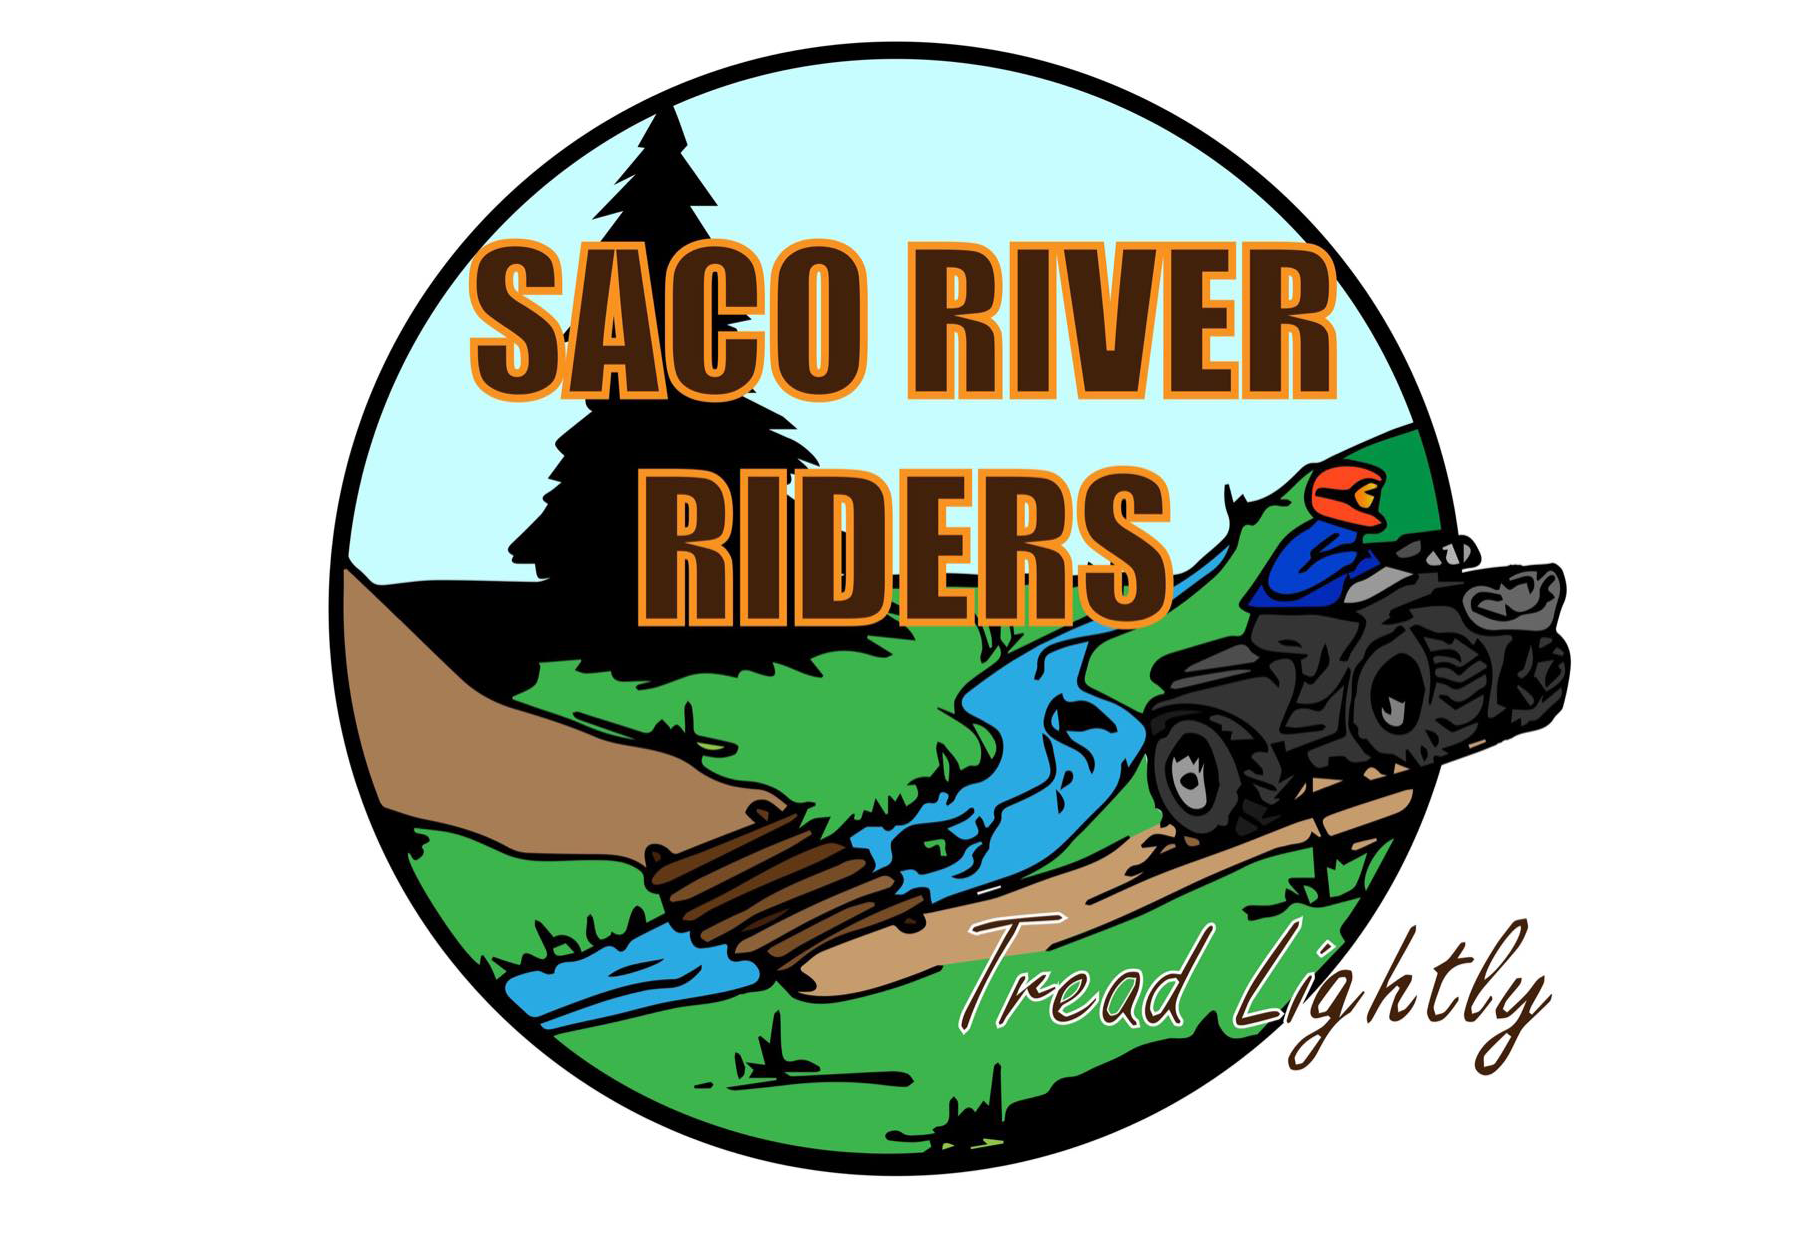 Saco River Riders ATV Club